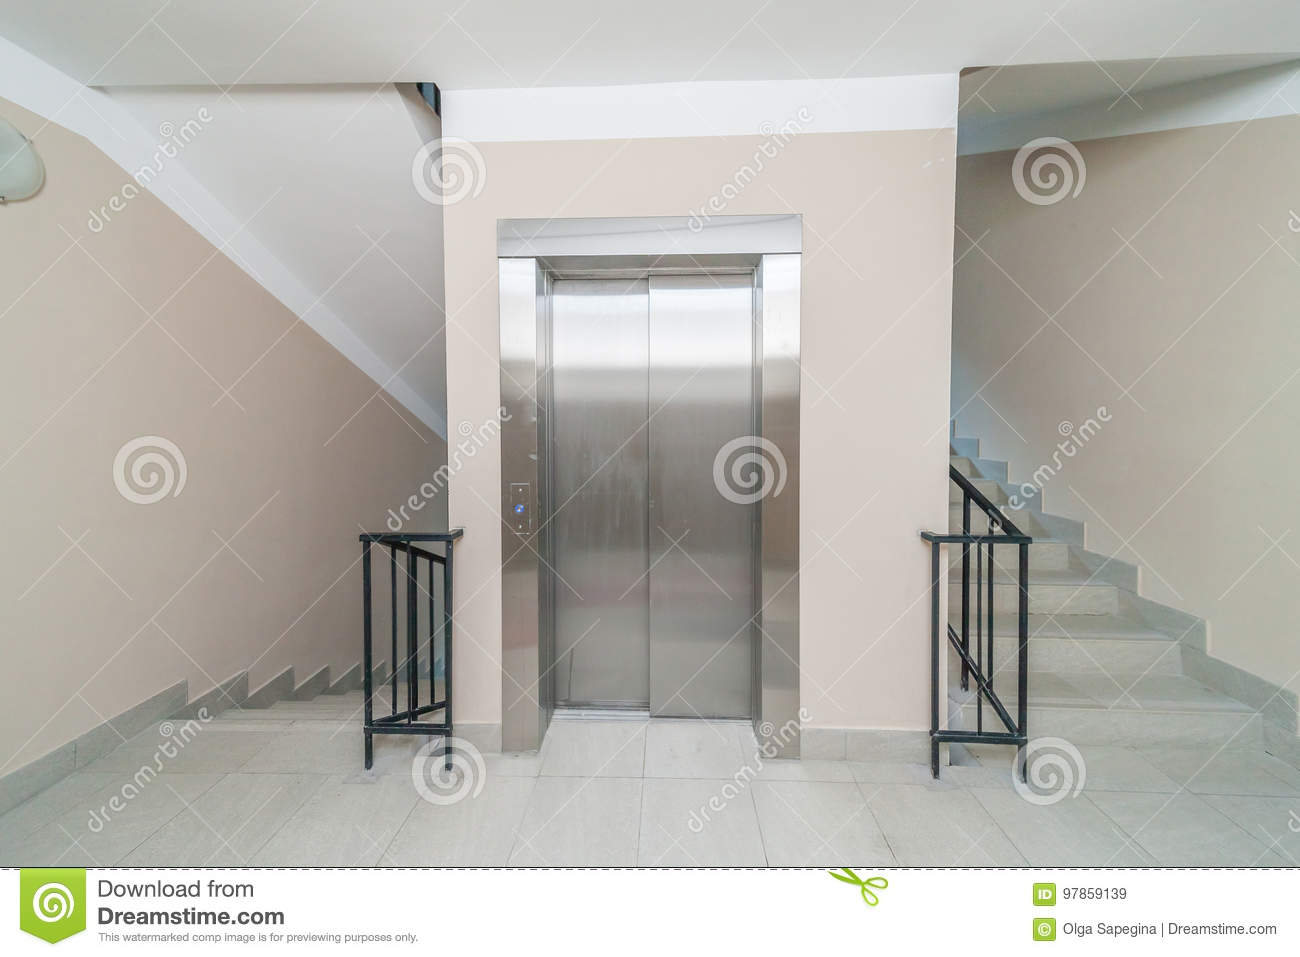 Download Elevator And Stairs Stock Image. Image Of Door, Doors   97859139